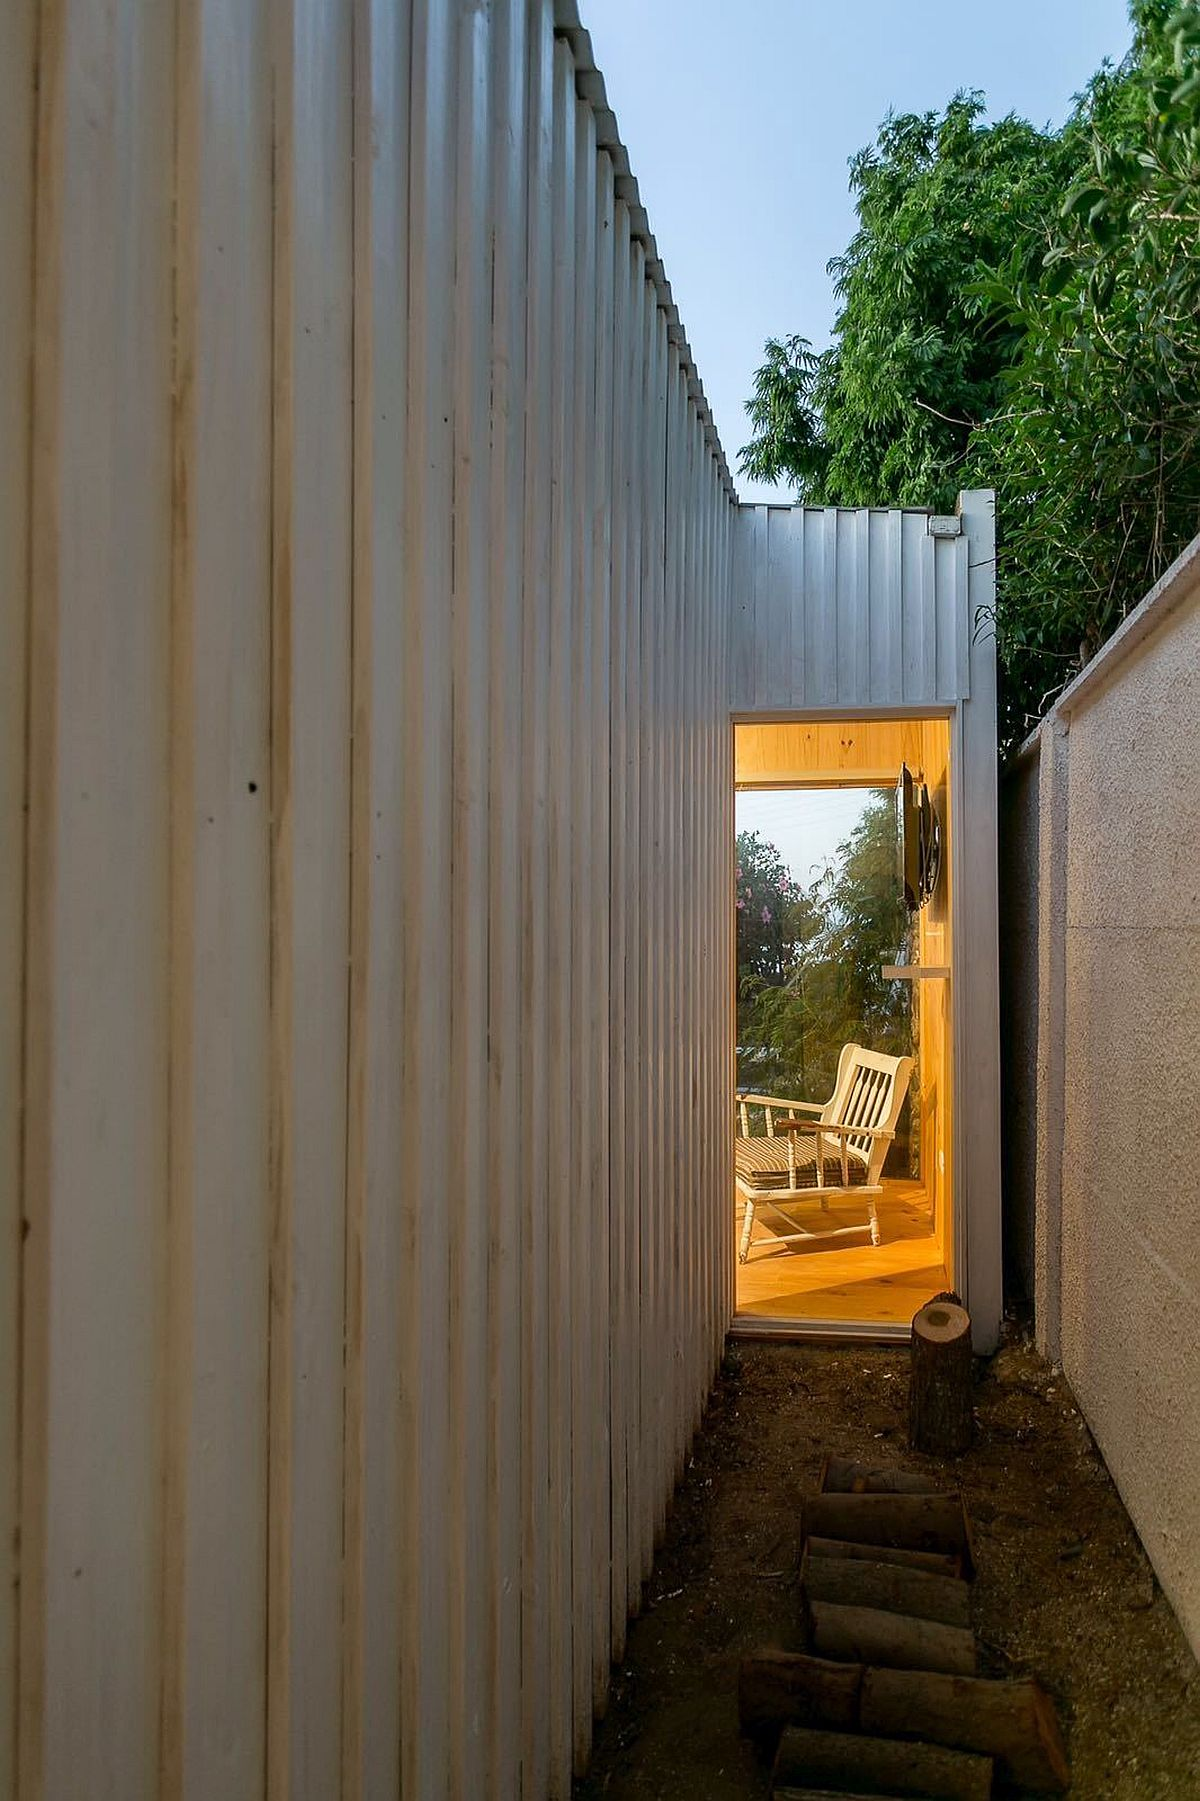 Working with tight spatial constraints at the Polycarbonate cabin